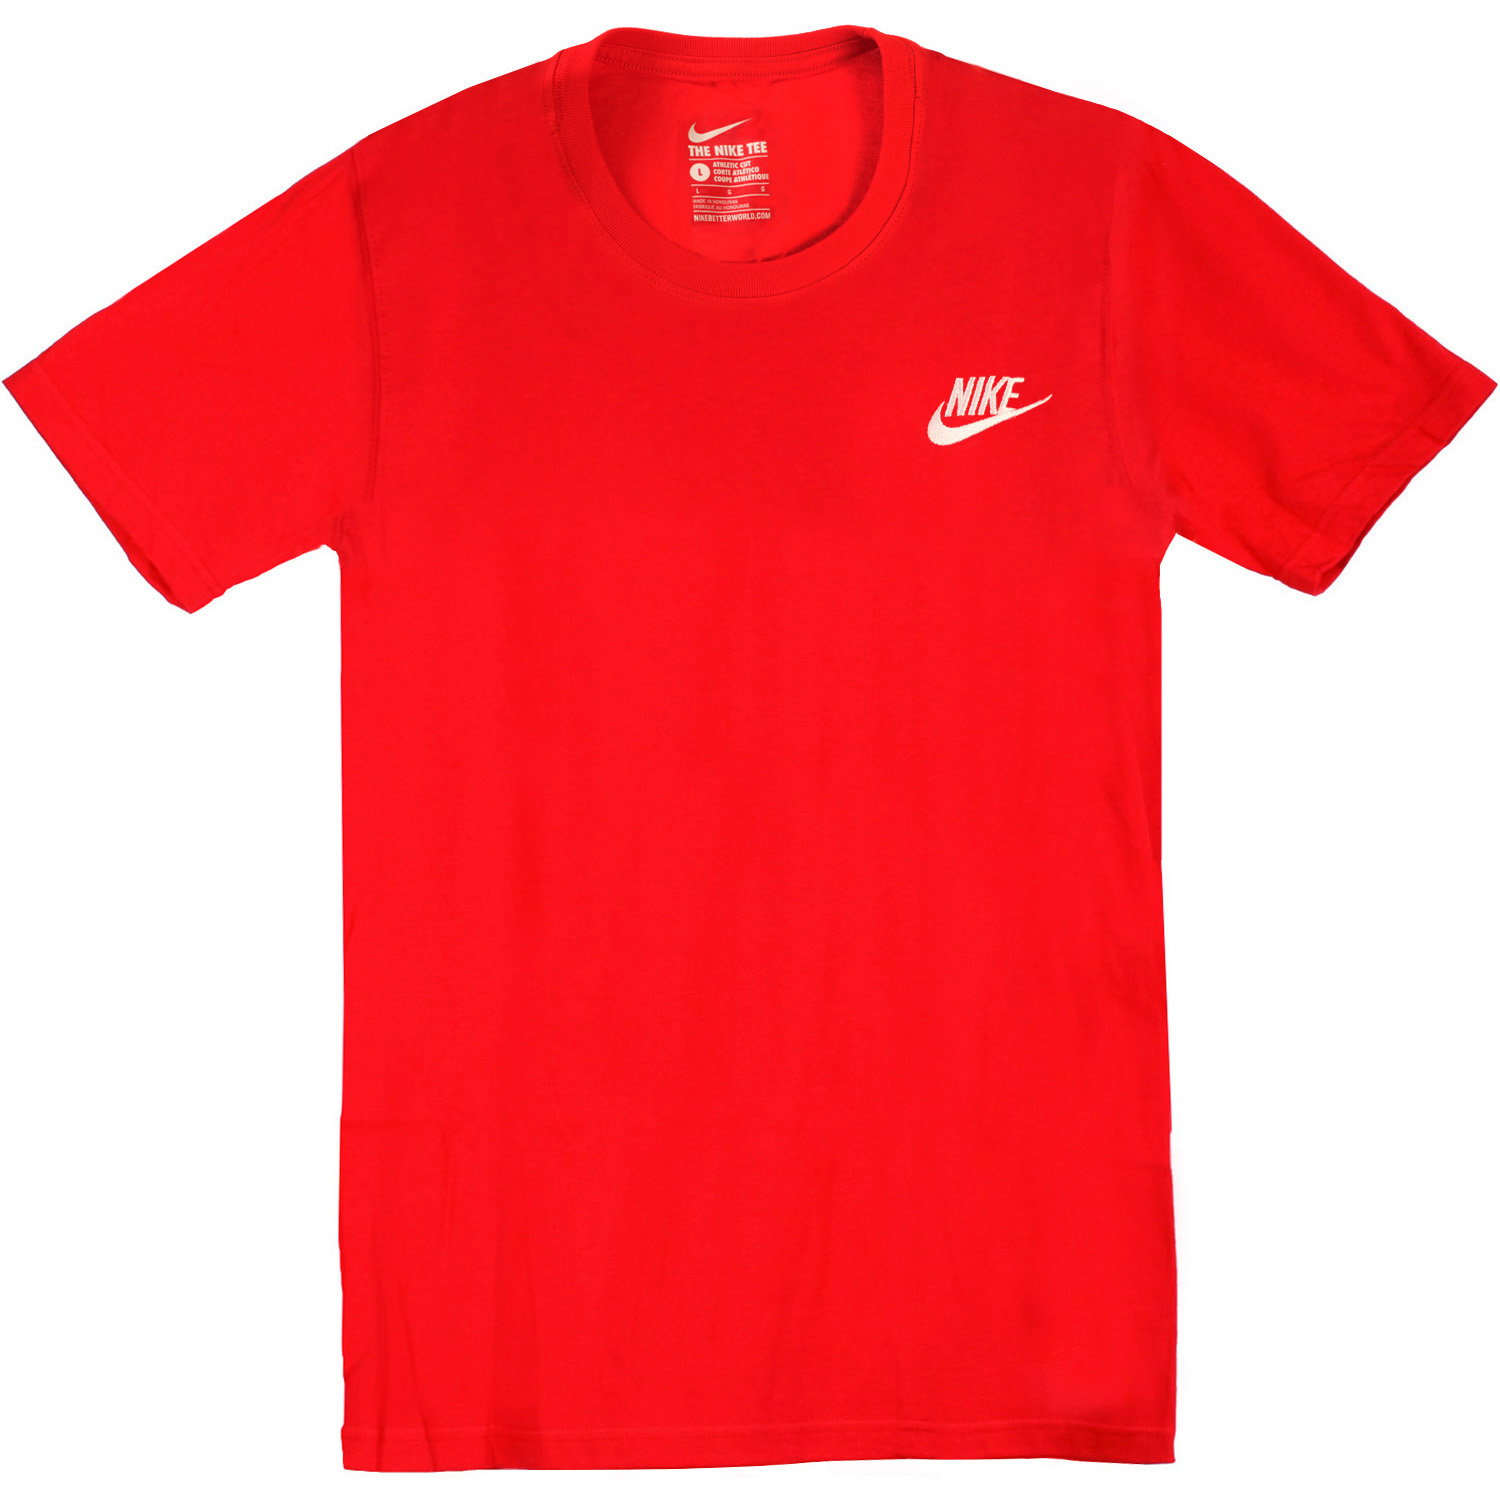 cd2dcf03d96e Men s Nike T-Shirt - Nike Futura Core Tee - Red